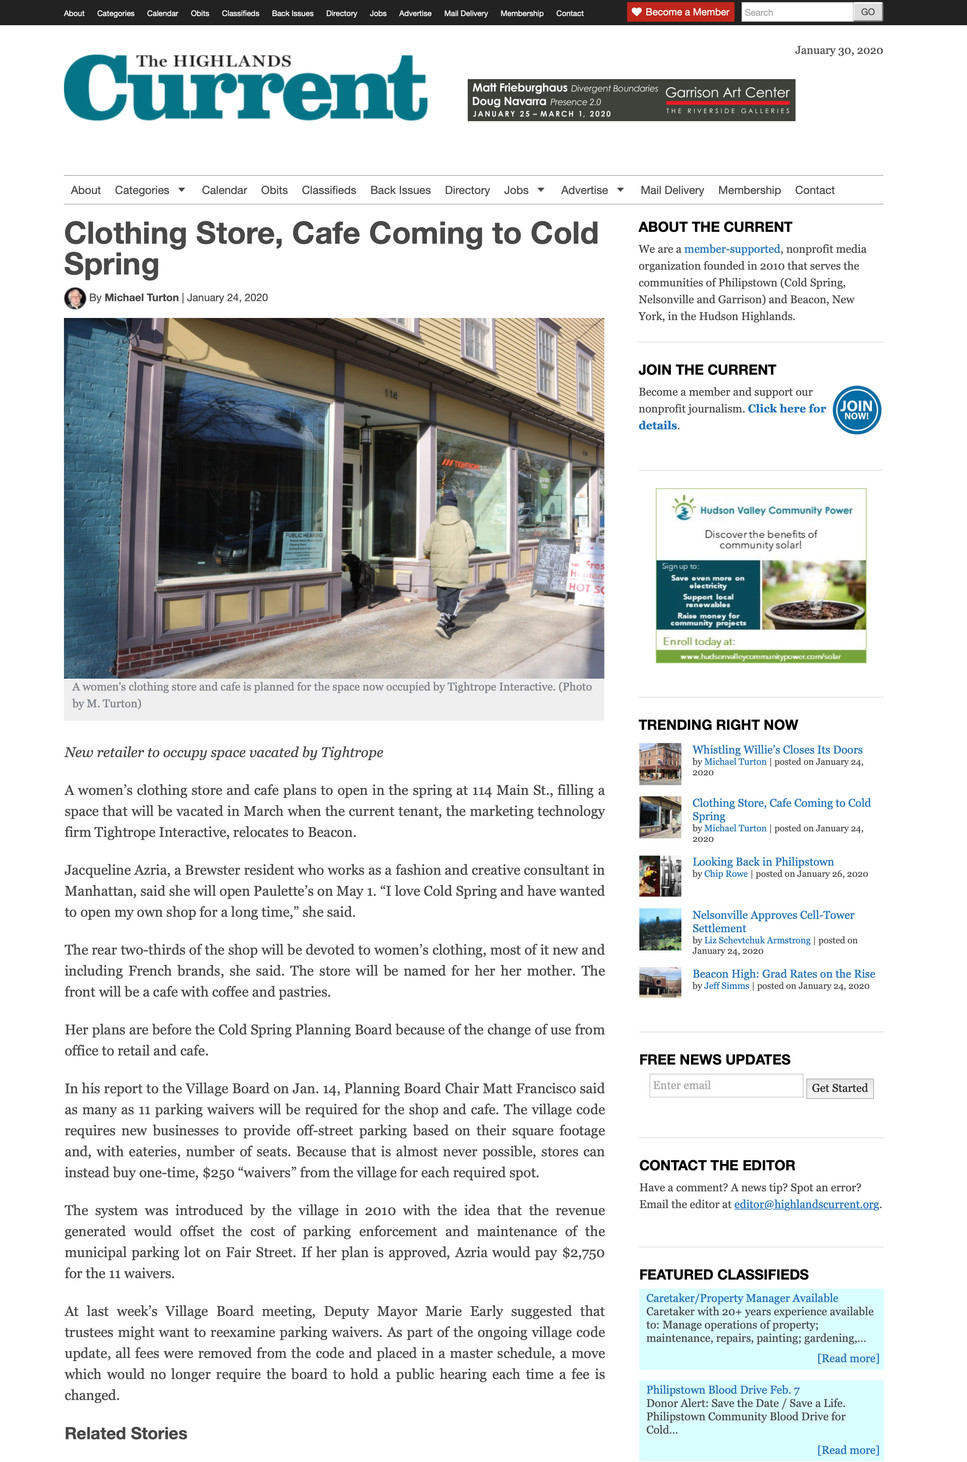 Clothing Store, Cafe coming to Cold Spring